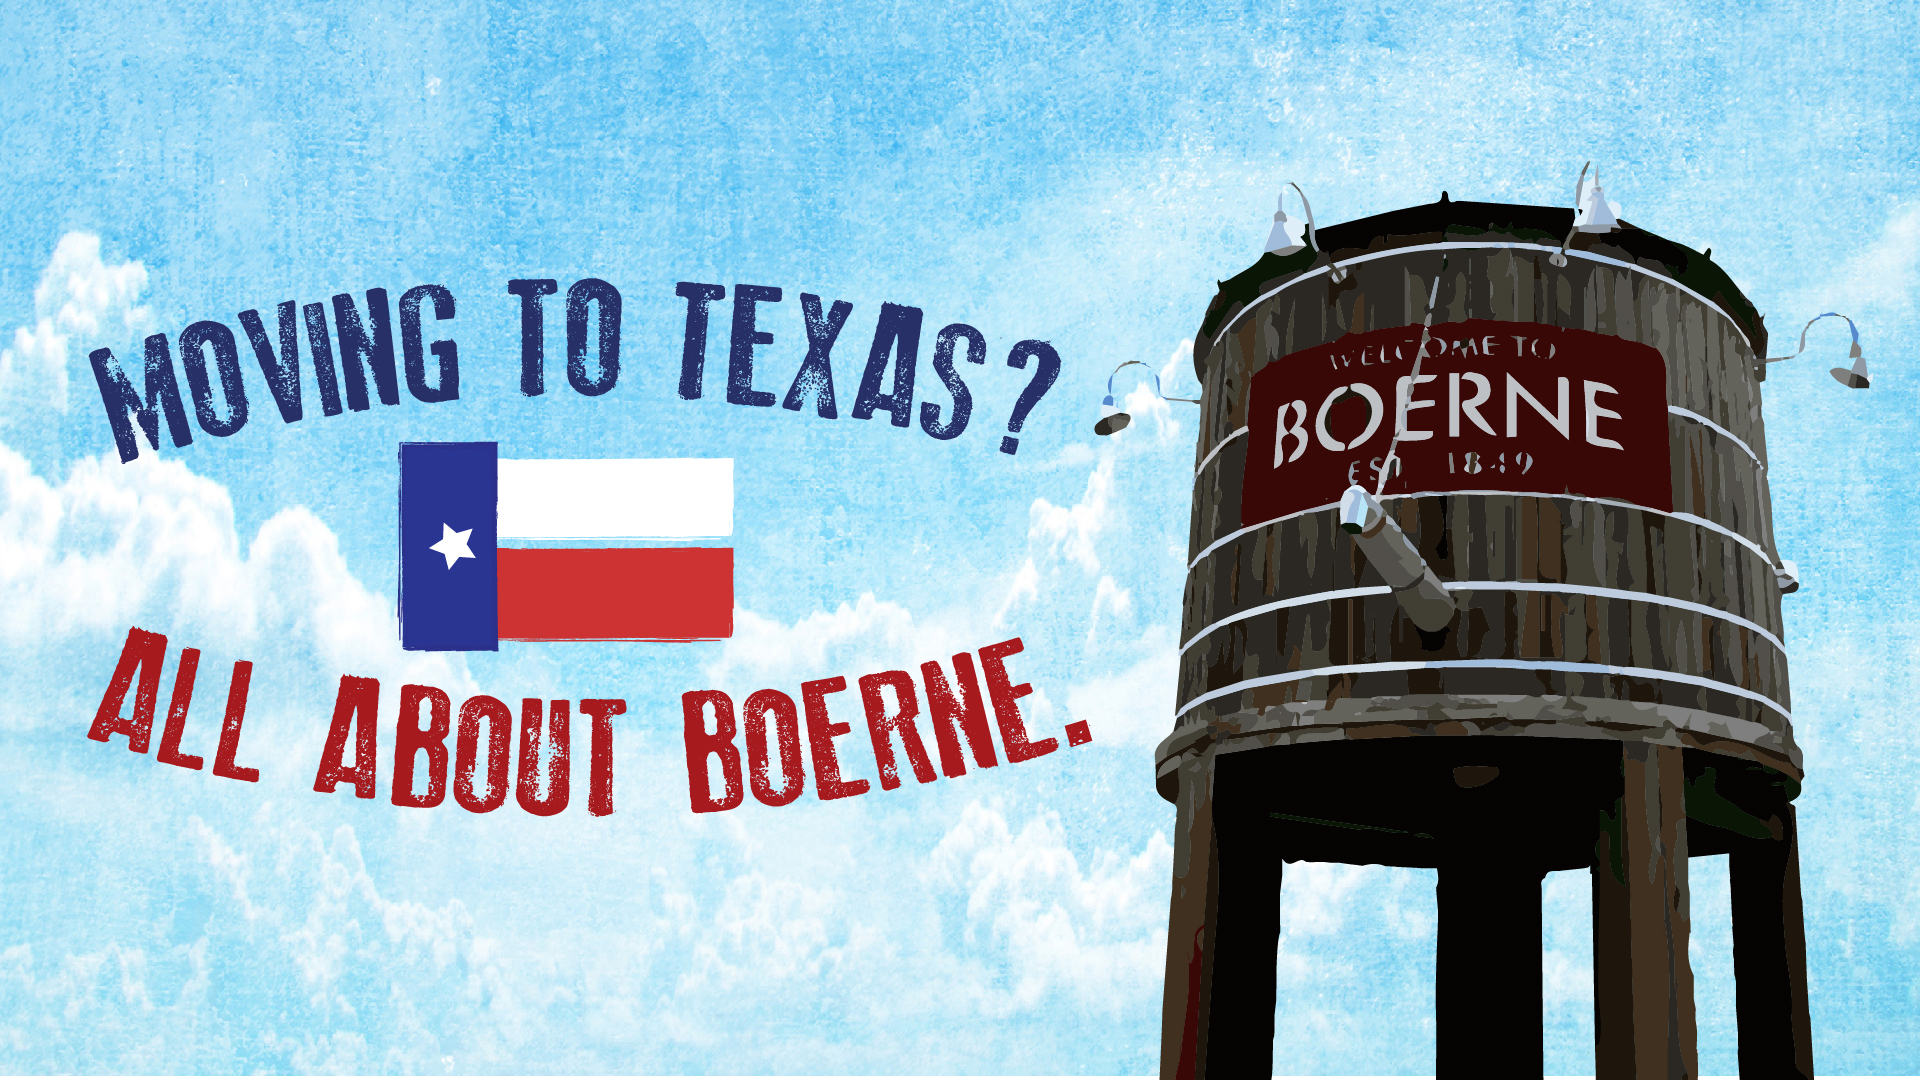 Moving to Texas? All About Boerne, TX